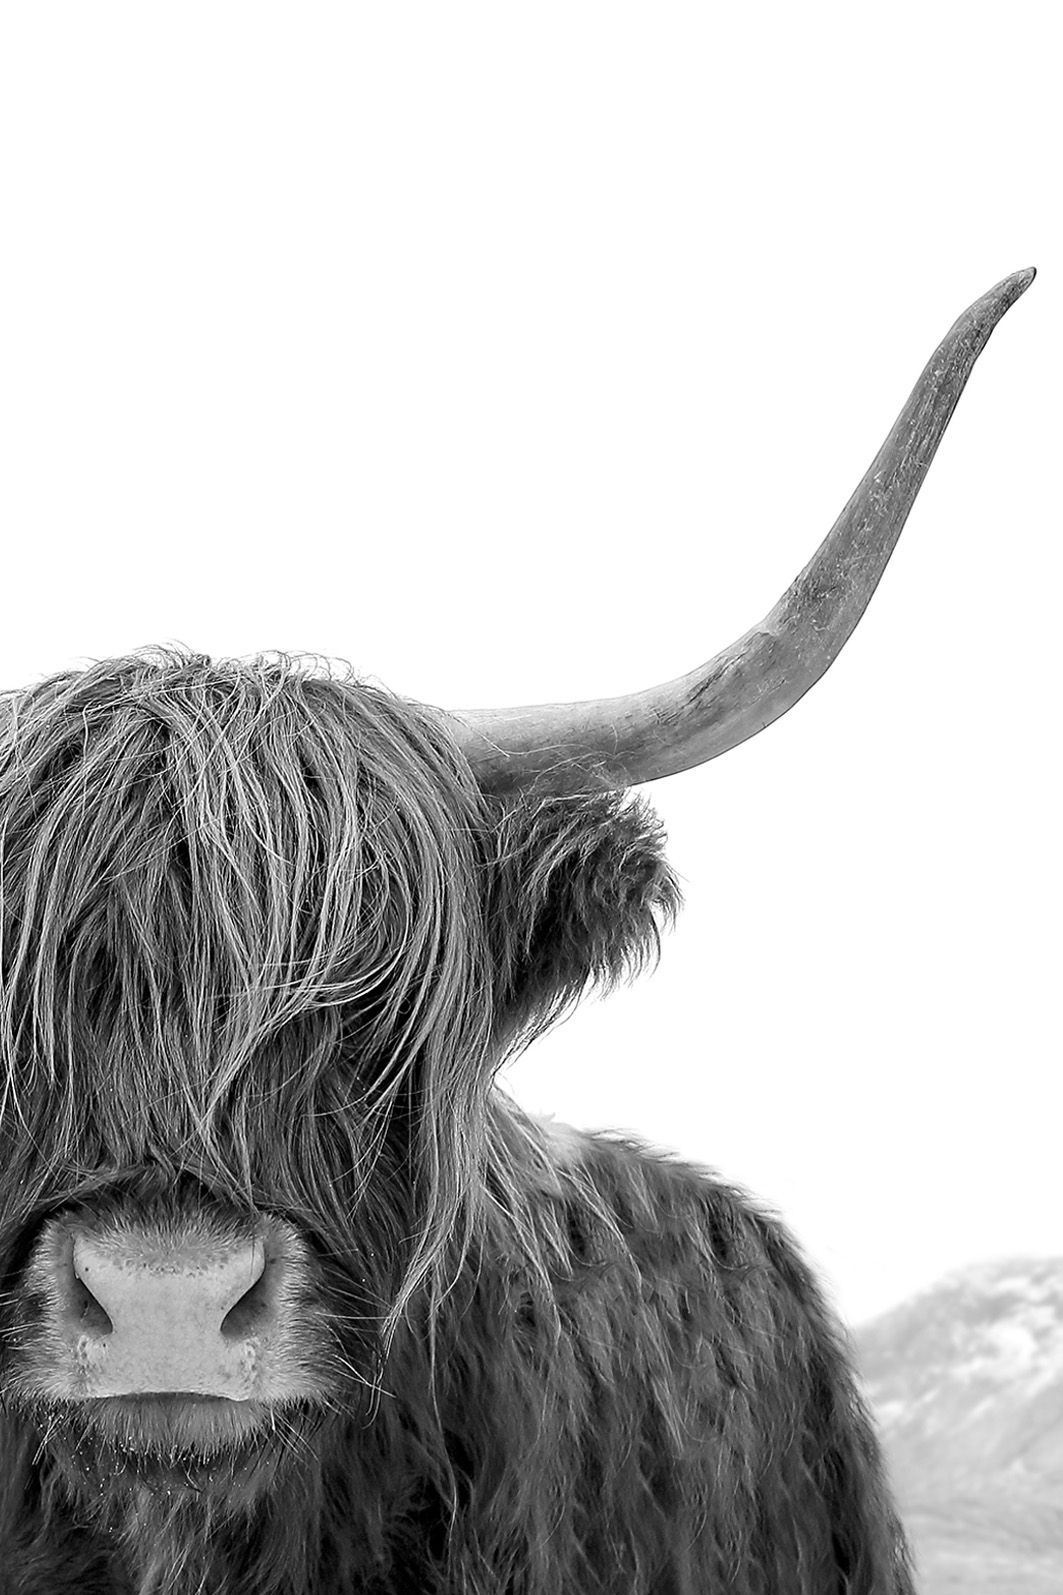 Highland cow art black and white print animal photography